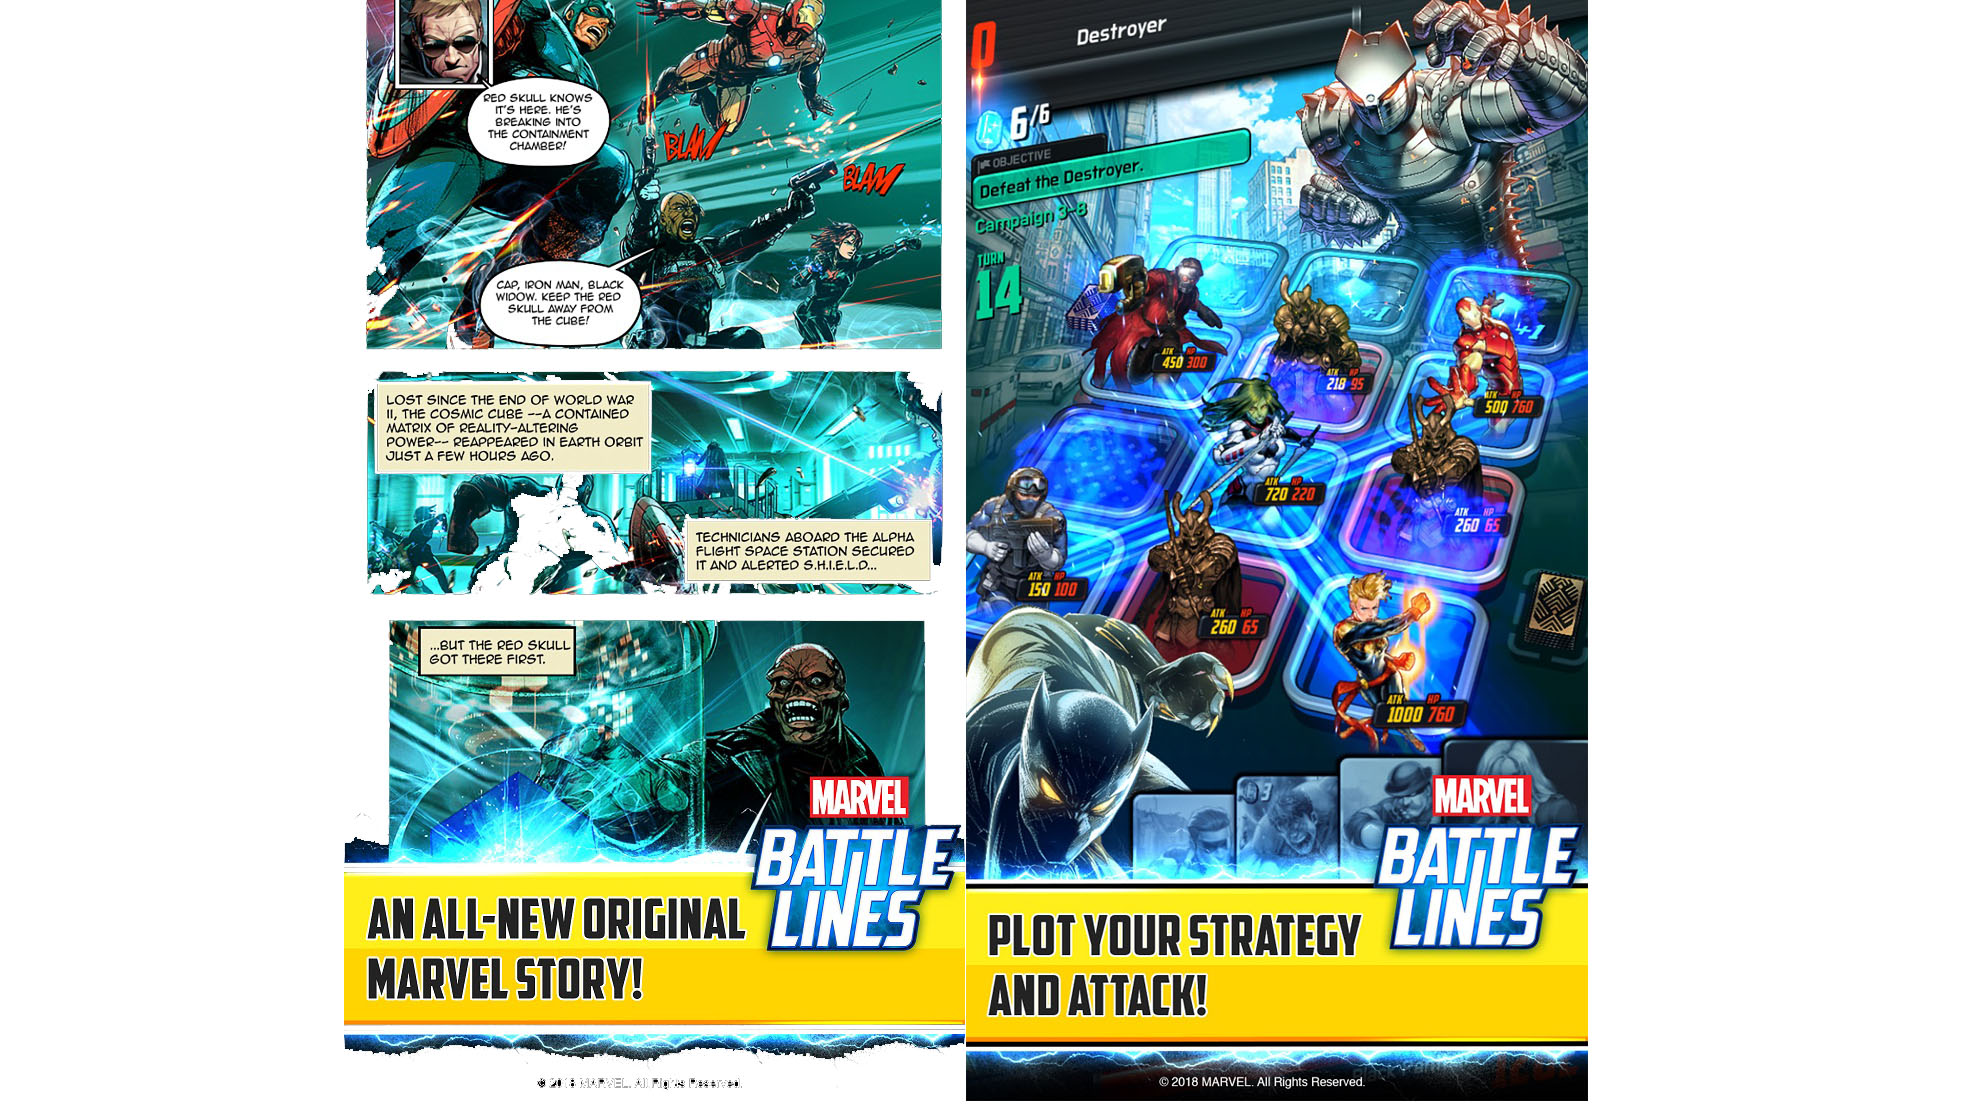 Marvel Battle Lines Story